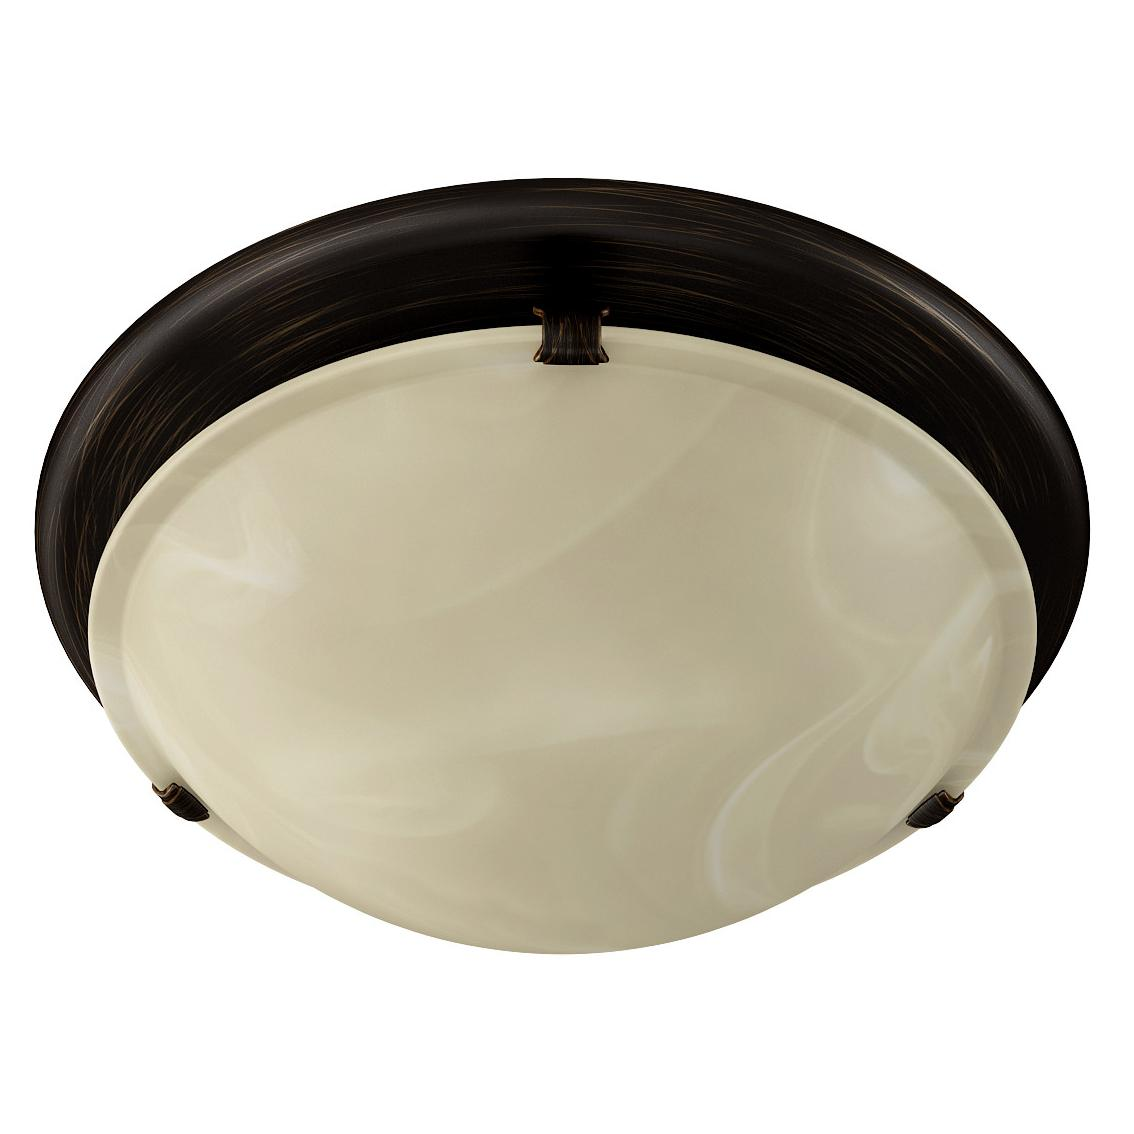 Broan Nutone 761rb Round Fan And Light Combo For Bathroom And Home Oil Rubbed Bronze Finish With Ivory Alabaster Glass 2 5 Sones 80 Cfm